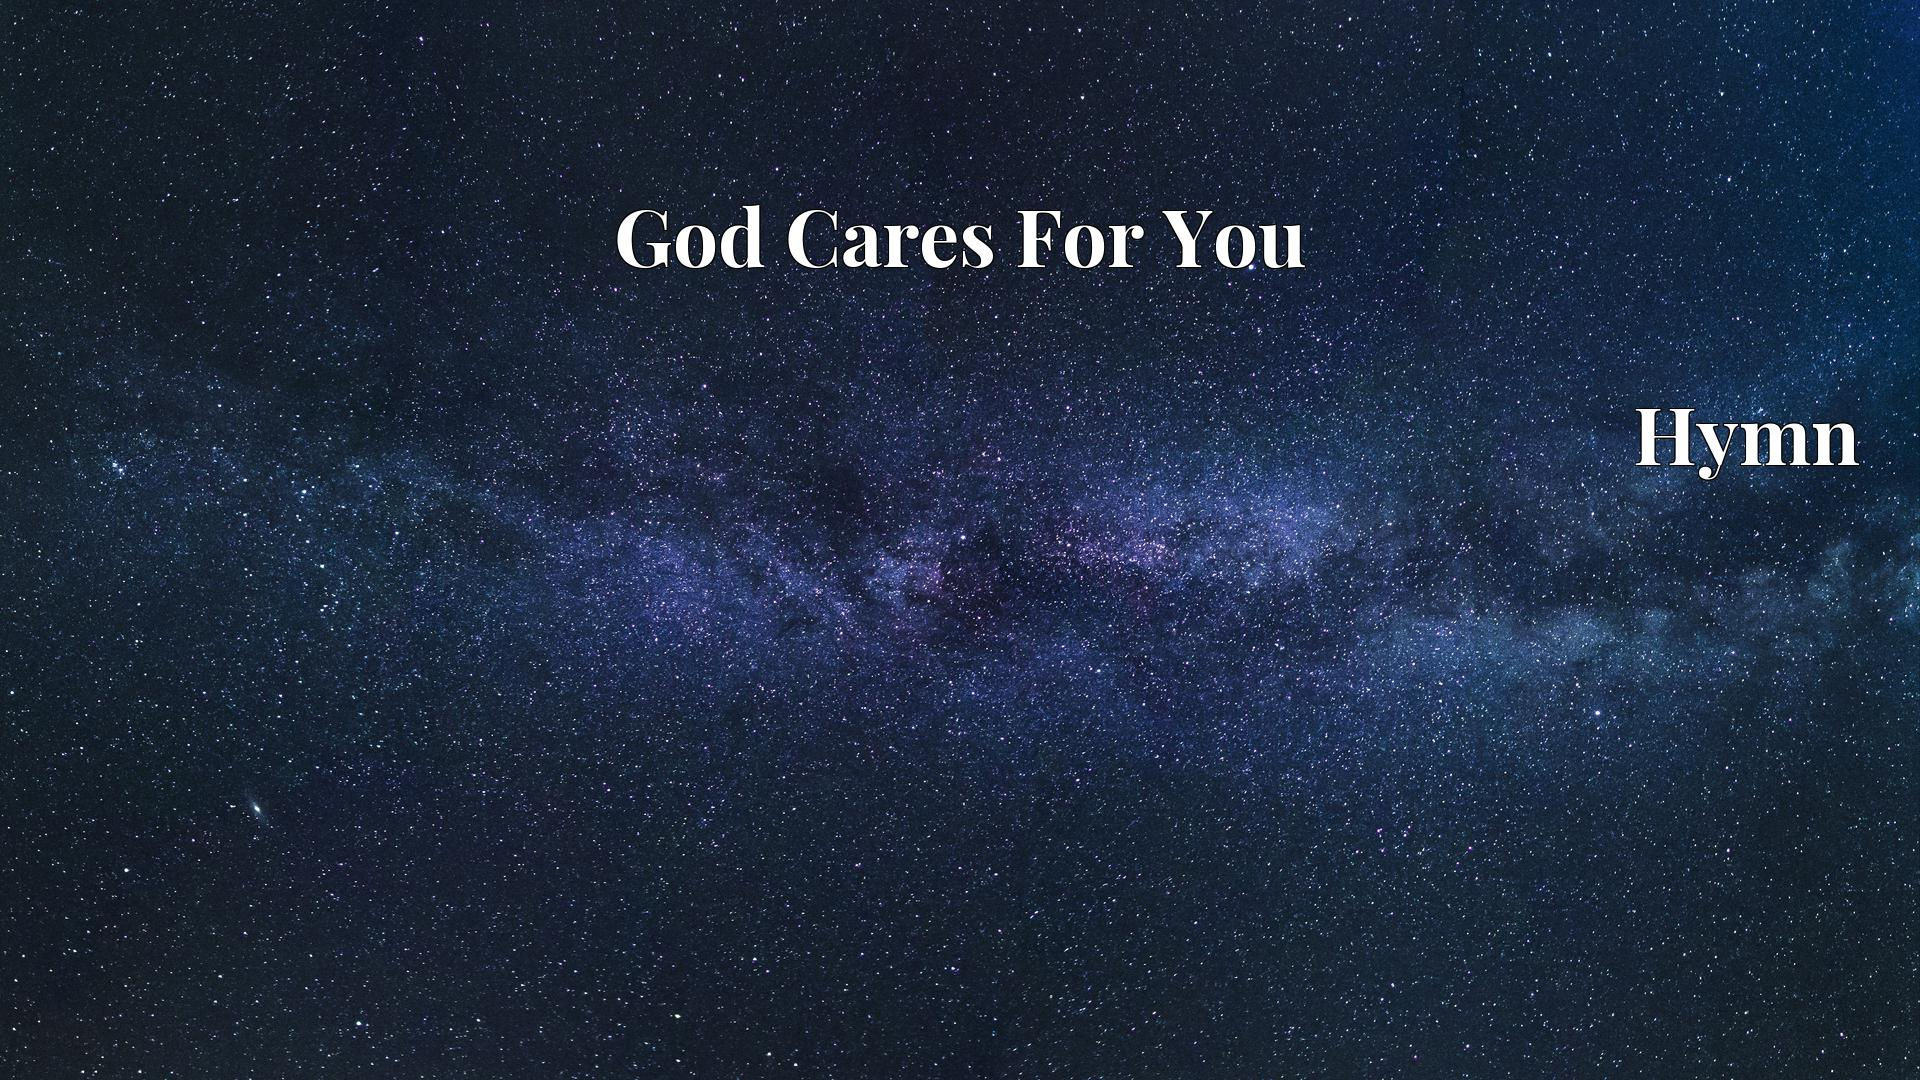 God Cares For You - Hymn